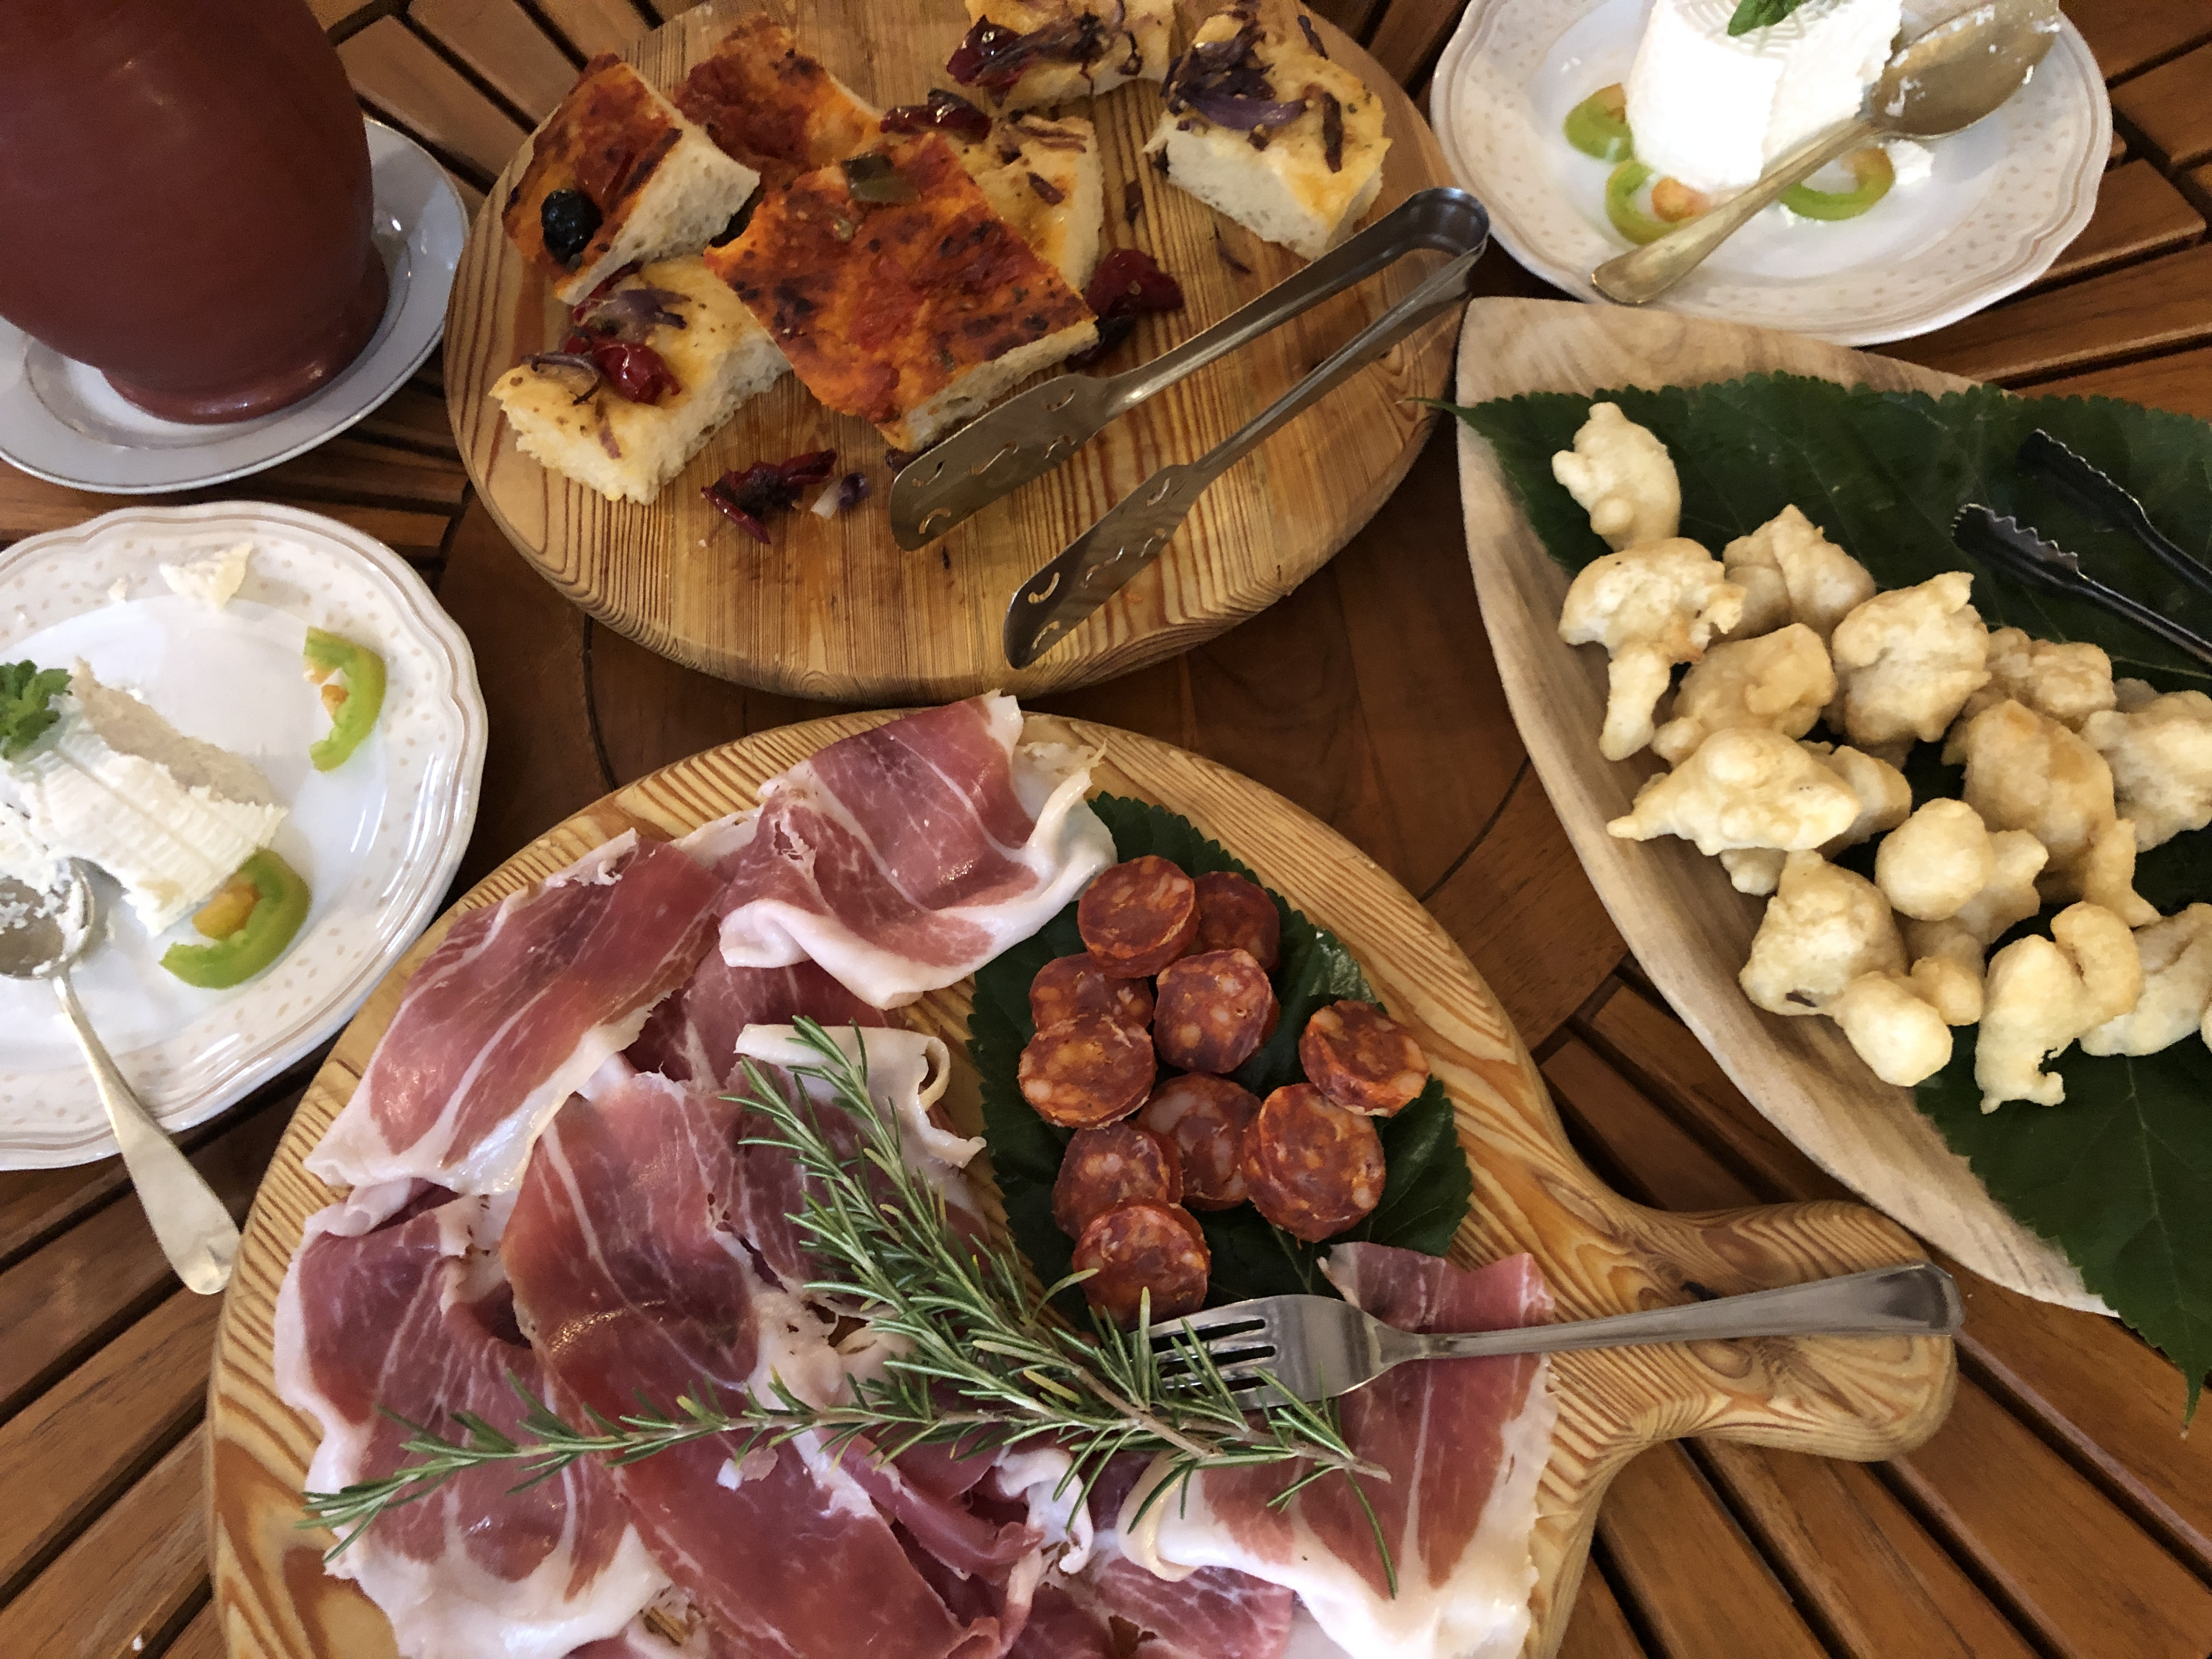 WINE AND FOOD OF CALABRIA